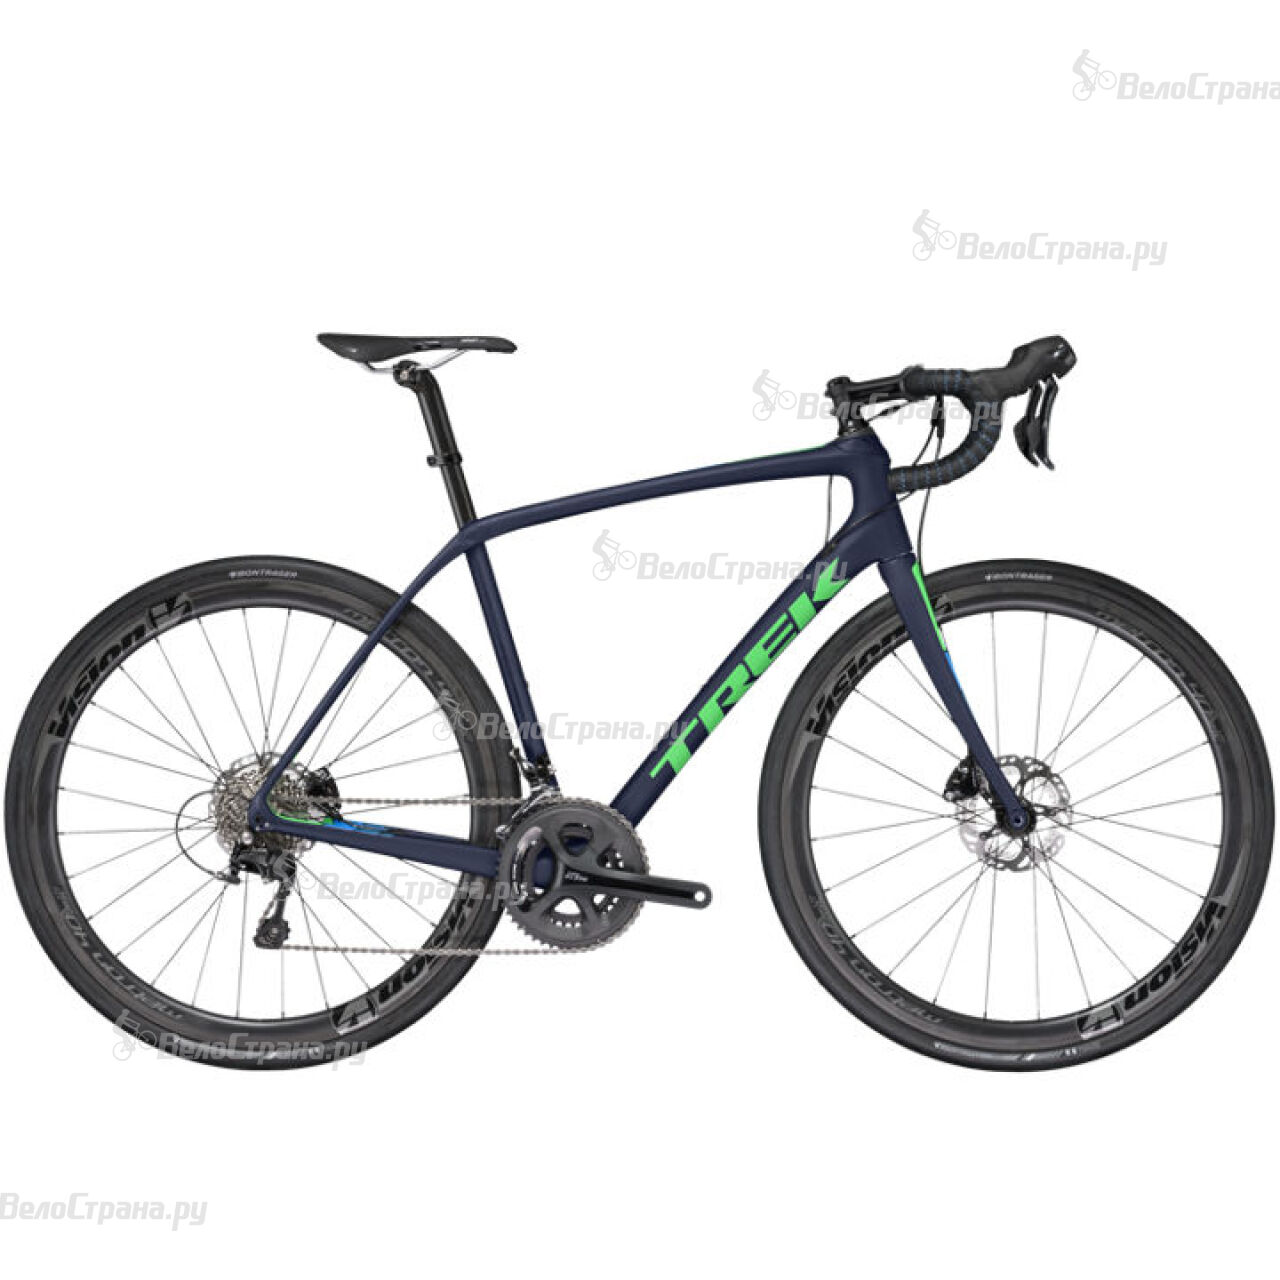 Велосипед Trek Domane SL 5 Disc (2017) велосипед trek domane alr 4 disc 2017